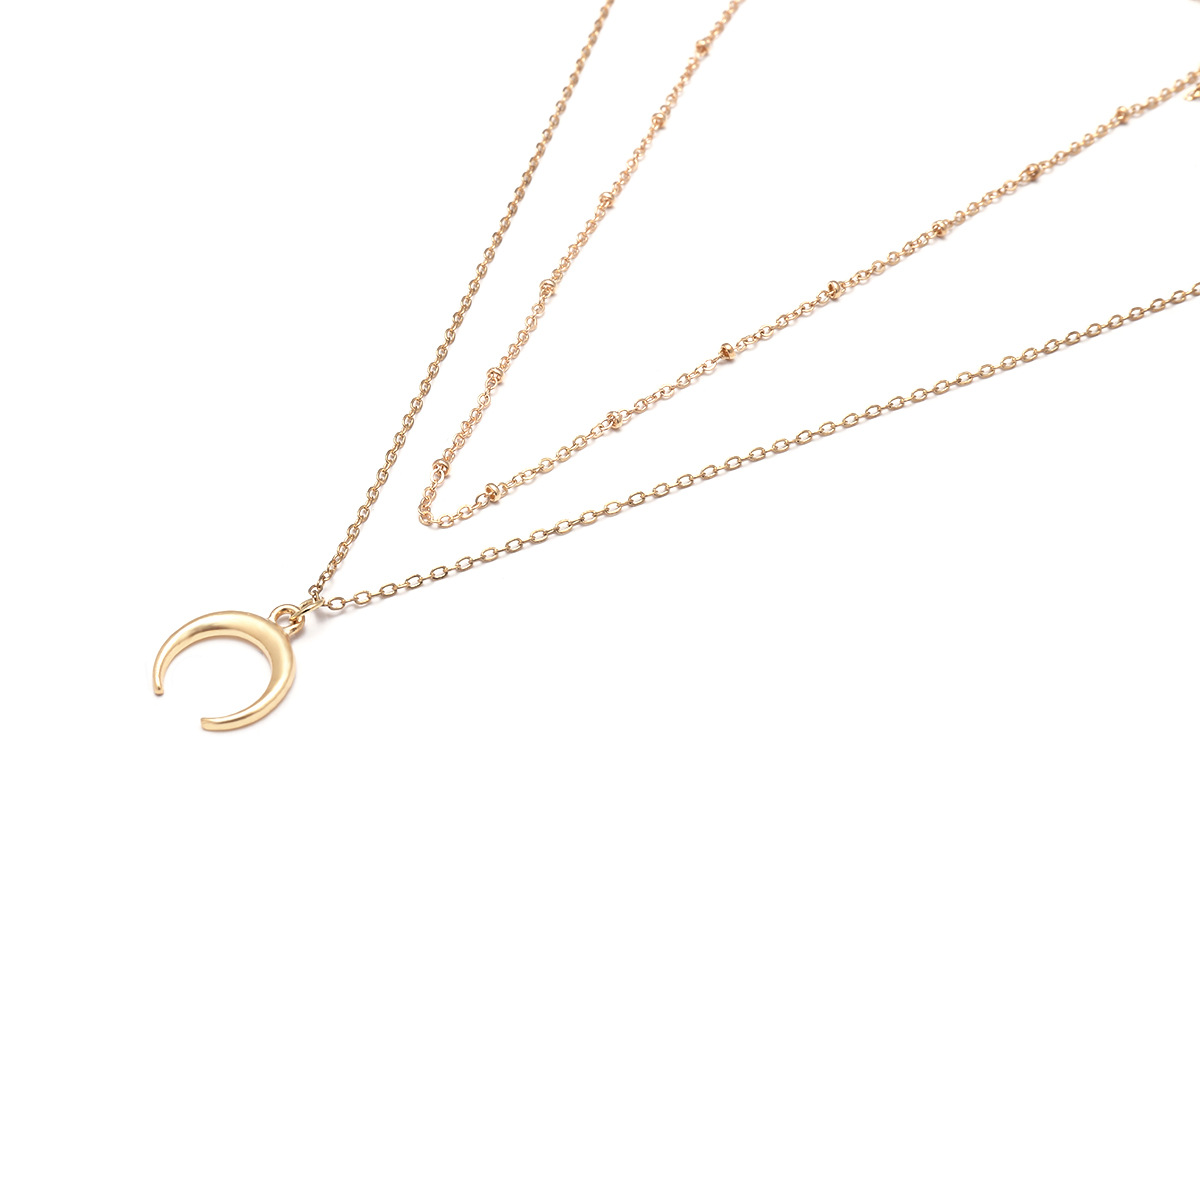 Simple Alloy necklace Geometric NHXR1767-Alloy 1738